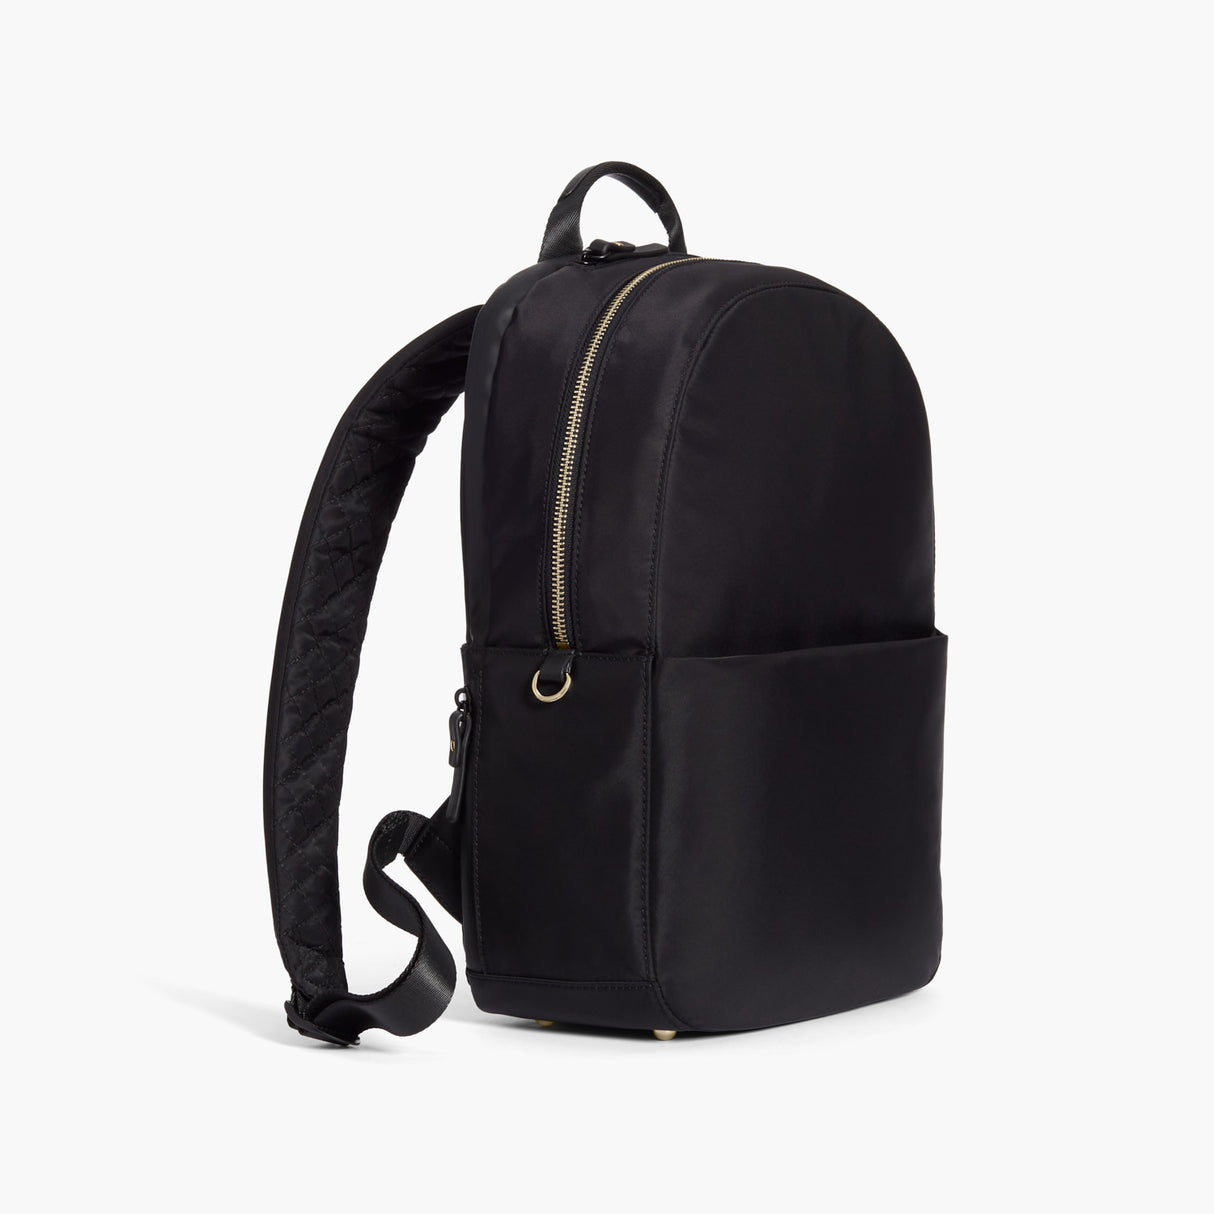 Side - Beacon - Nylon - Black / Gold / Camel - Backpack - Lo & Sons